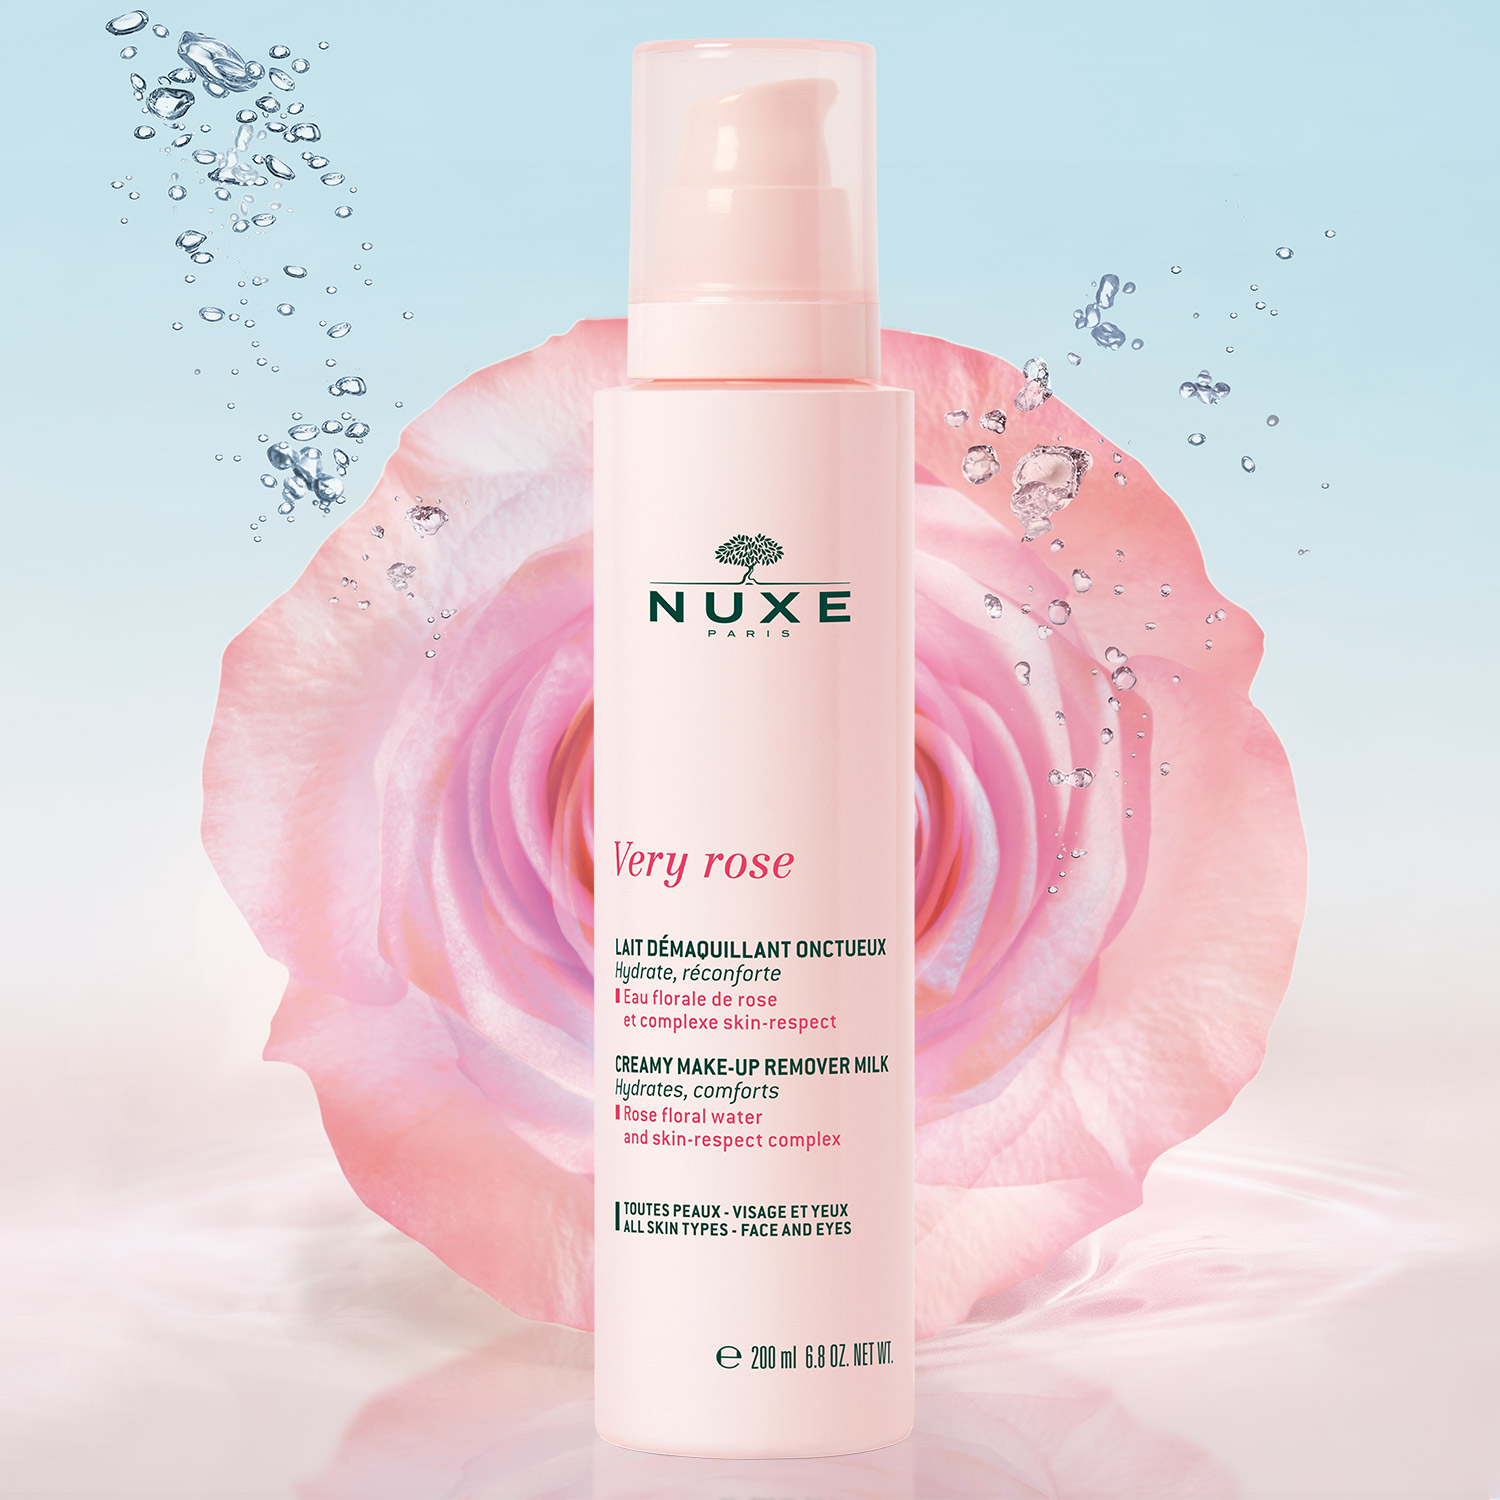 3264680022036-vn051201-fp_ls-nuxe-very_rose-eau_micellaire_ps-200ml-20201